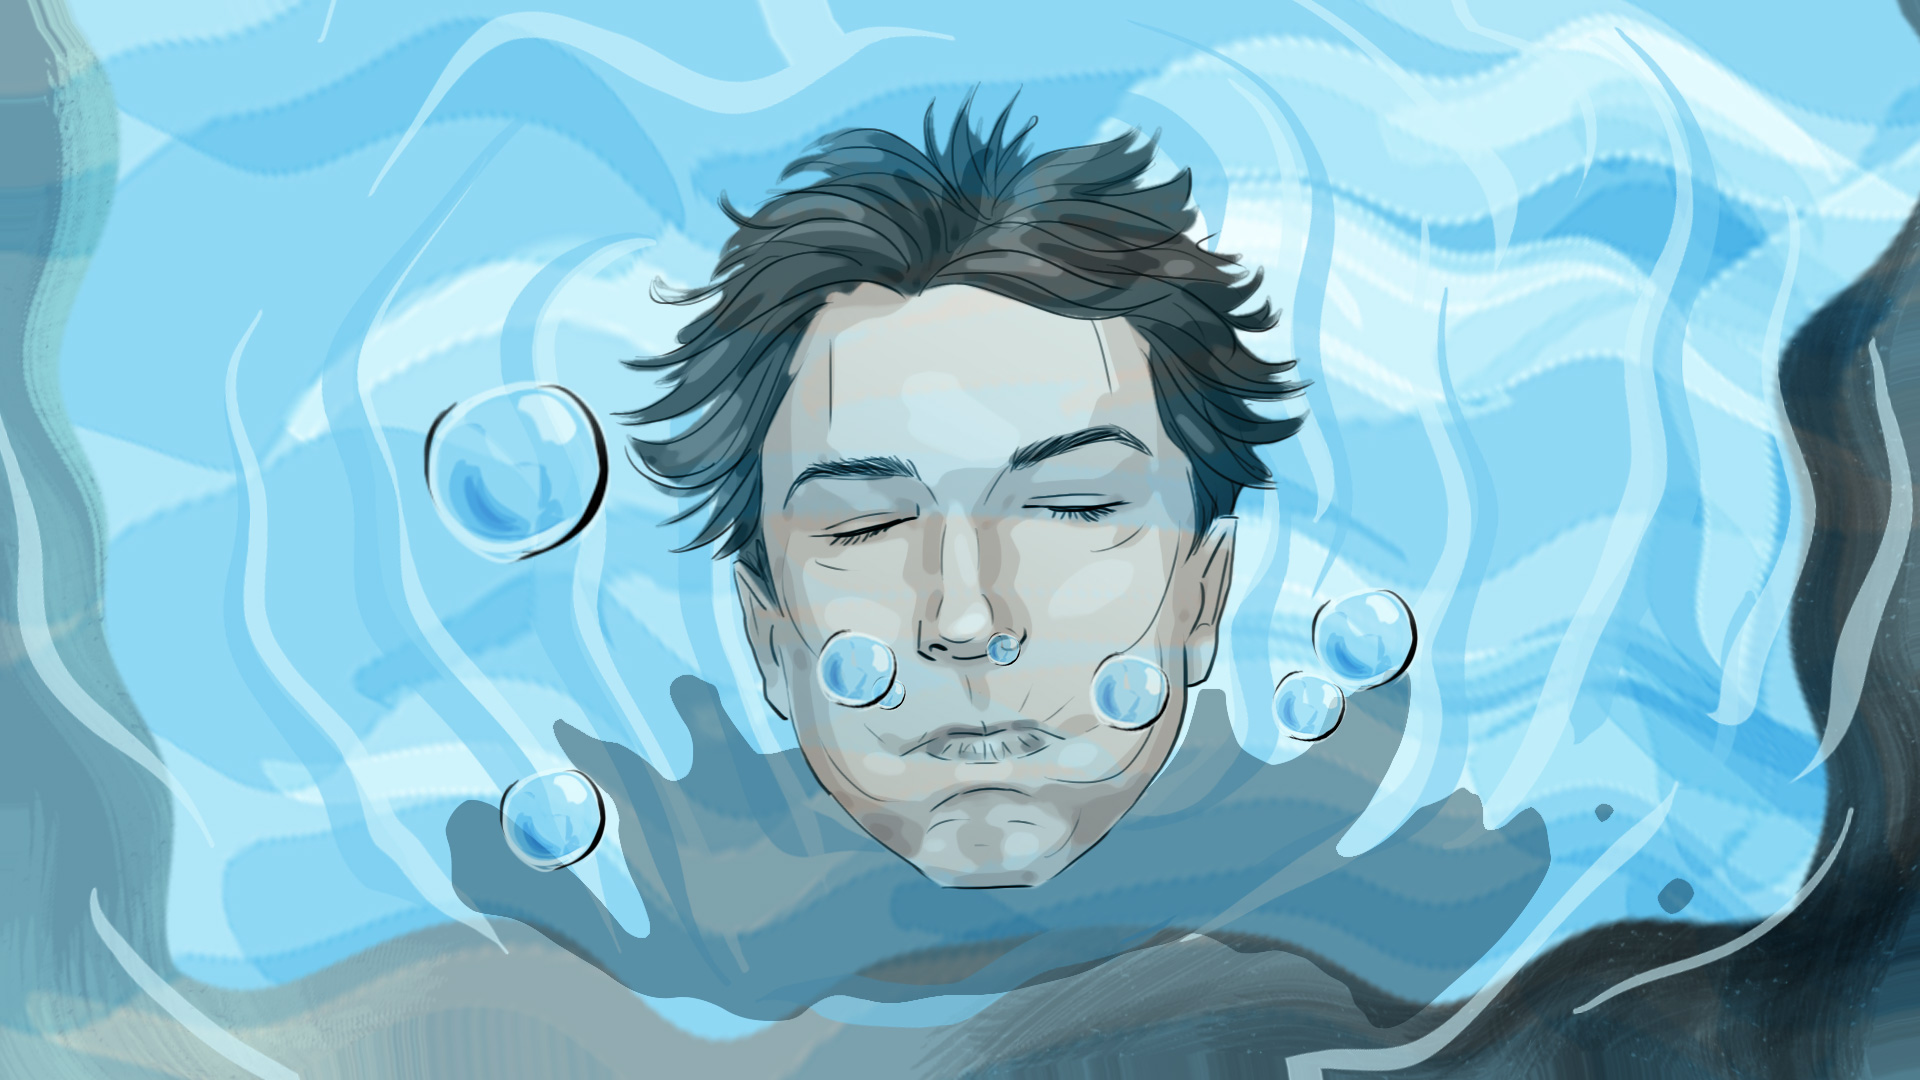 head in the water wakeup comedy illustration advertising